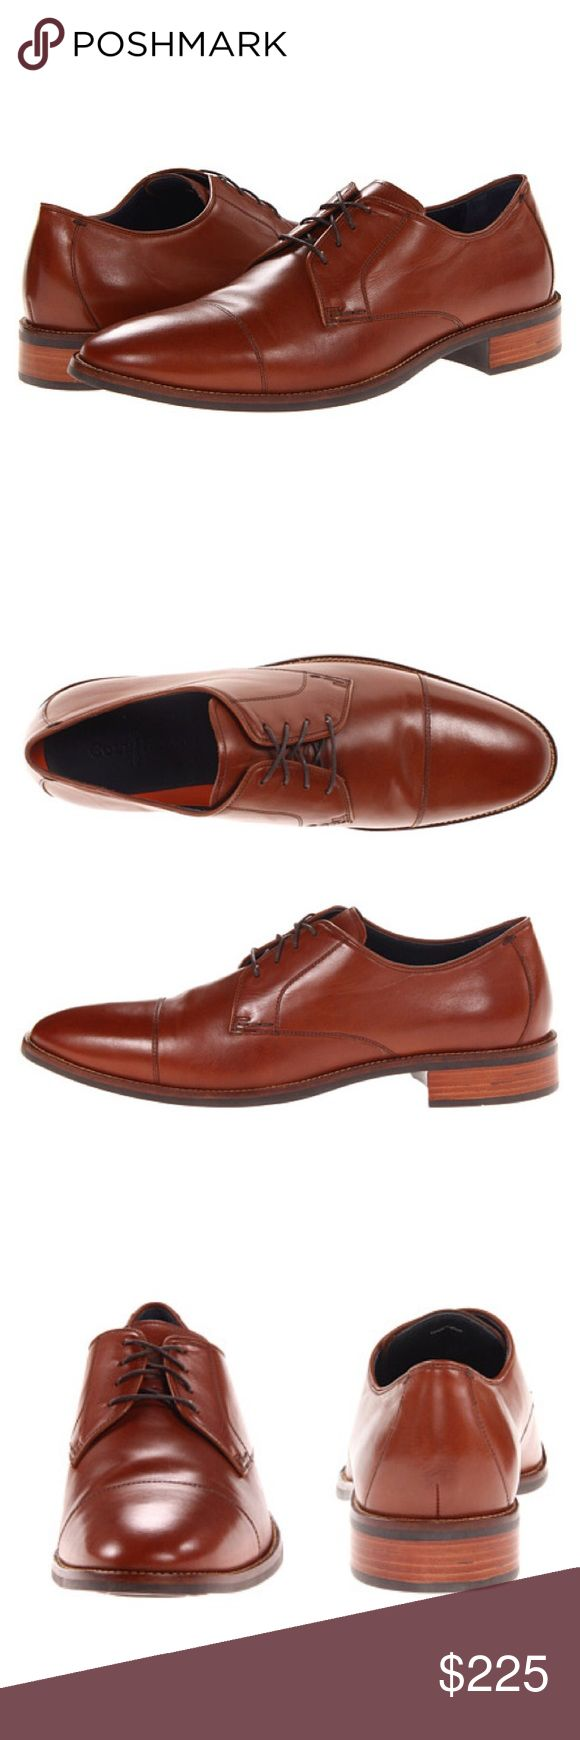 NWOT Cole Haan British Tan Lennox Hill Cap Ox ♡ A classic that will never go out of style is what you get with the Lenox Hill oxford. This cap toe leather oxford is ready for the boardroom or a night out on the town and will keep you comfortable with Grand OS® technology which features a dual compound cushioning system!  ♡ Leather upper Lace-up closure Round cap toe Leather lining Leather lined, lightly cushioned footbed Cole Haan Grand OS® technology for increased cushioning Rubber sole…